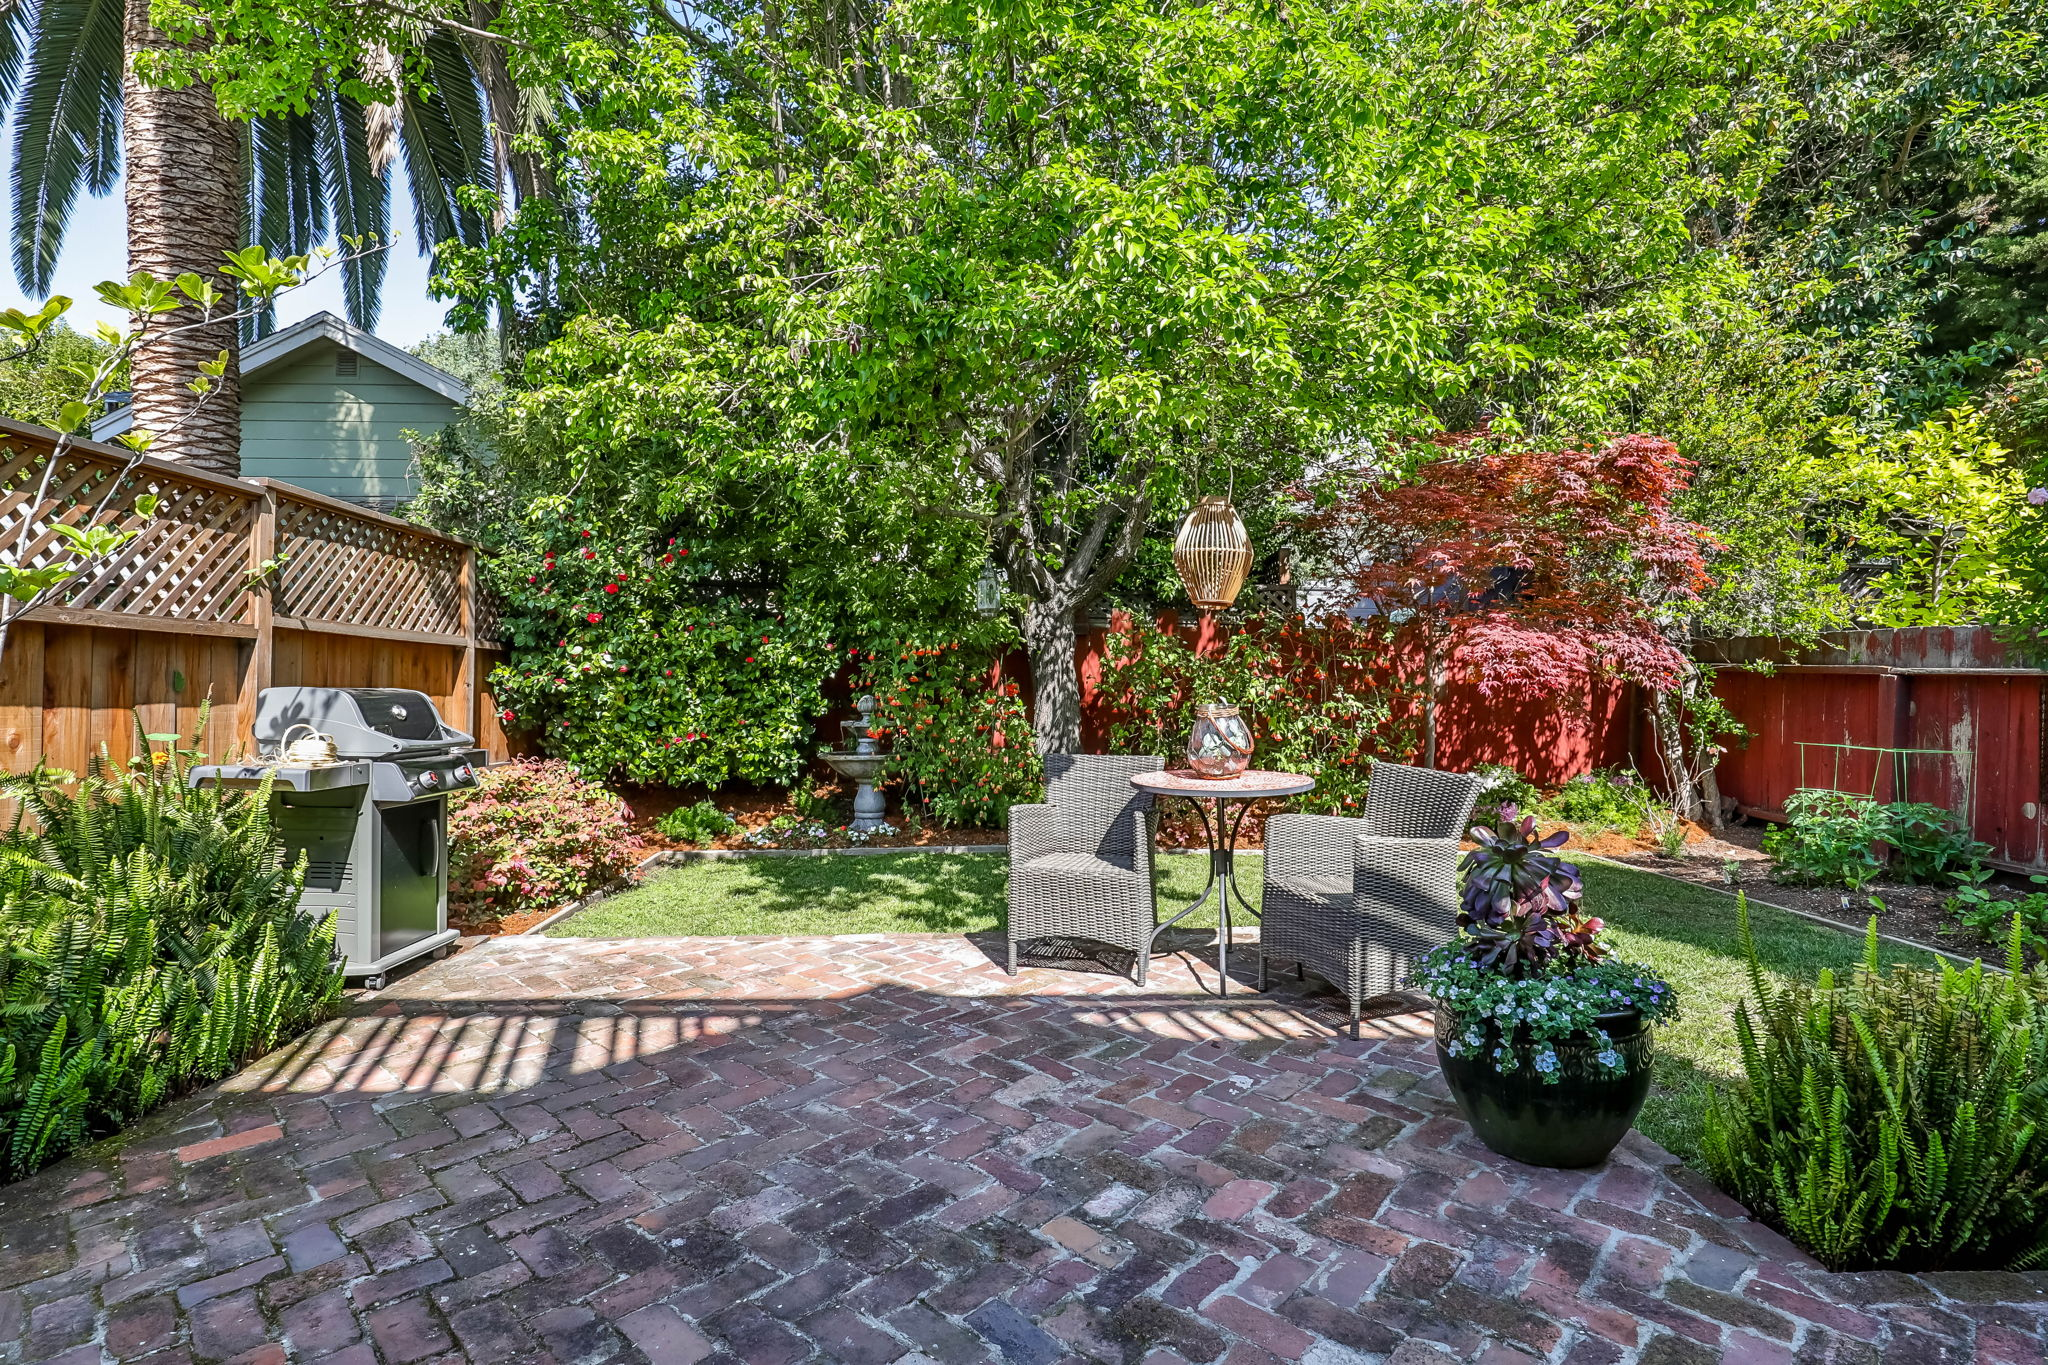 Used-Brick Patio Adds Character